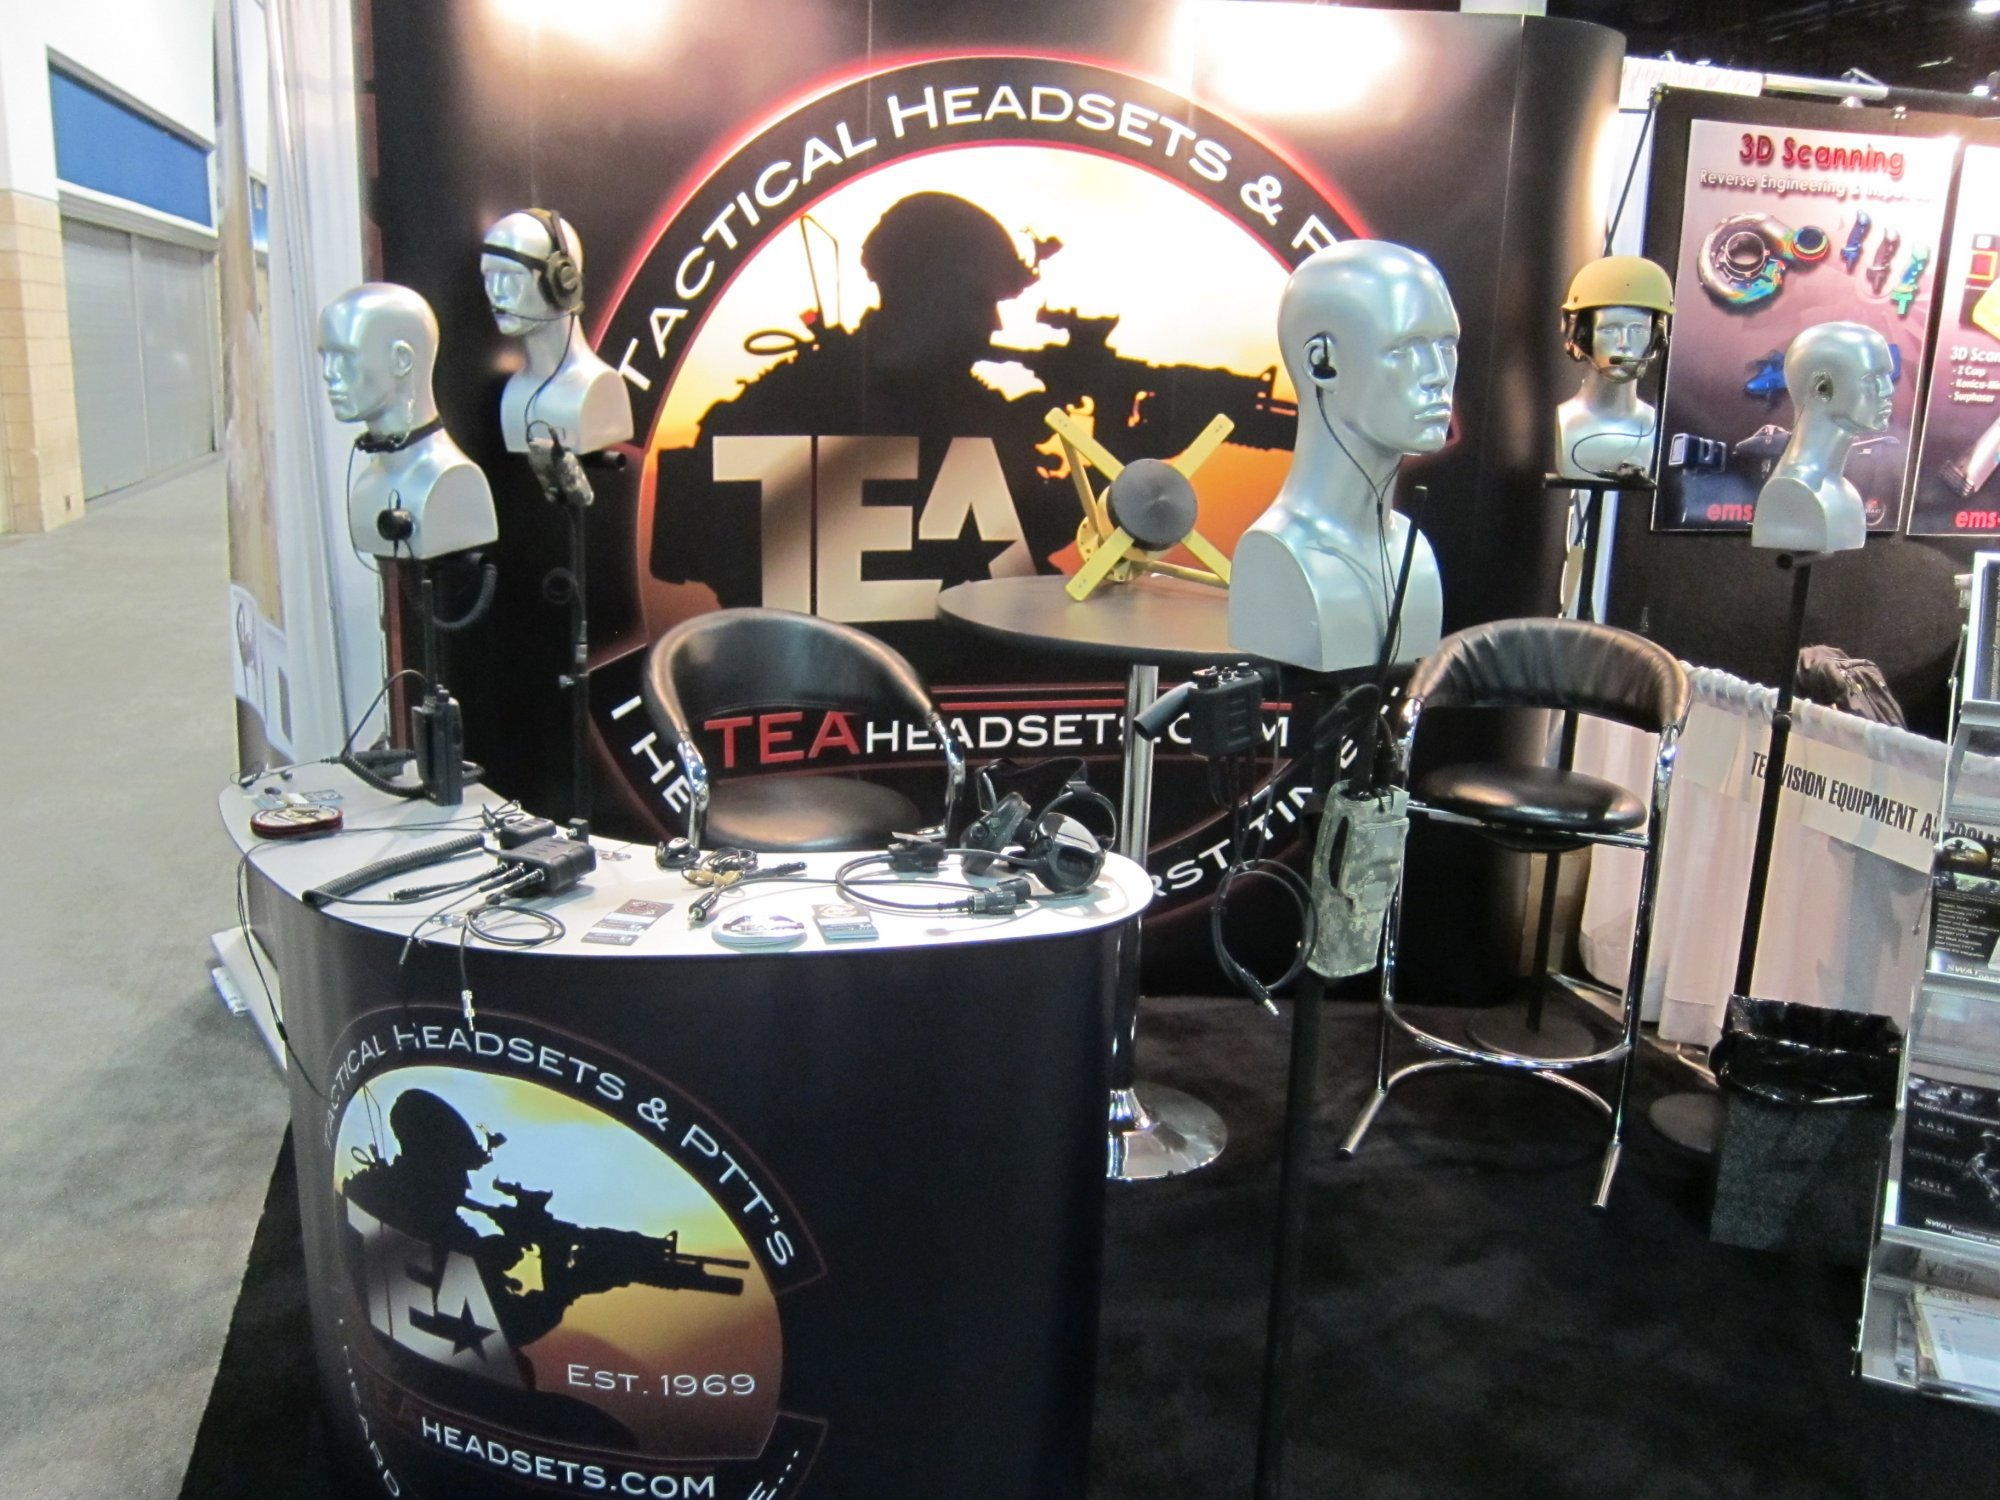 TEA Invisio Digital Ears X50 System Tactical Comms Headset with X50 Mulit Com PTT Push To Talk Button SOFIC 2011 6 <!  :en  >TEA INVISIO Digital Ears X50 System Digital In Ear Bone Conduction Tactical Comms (Tactical Communications) Headset with X50 Multi Com PTT (Push To Talk) Button Module for Military Special Operations Forces (SOF) and LE SWAT Operators<!  :  >